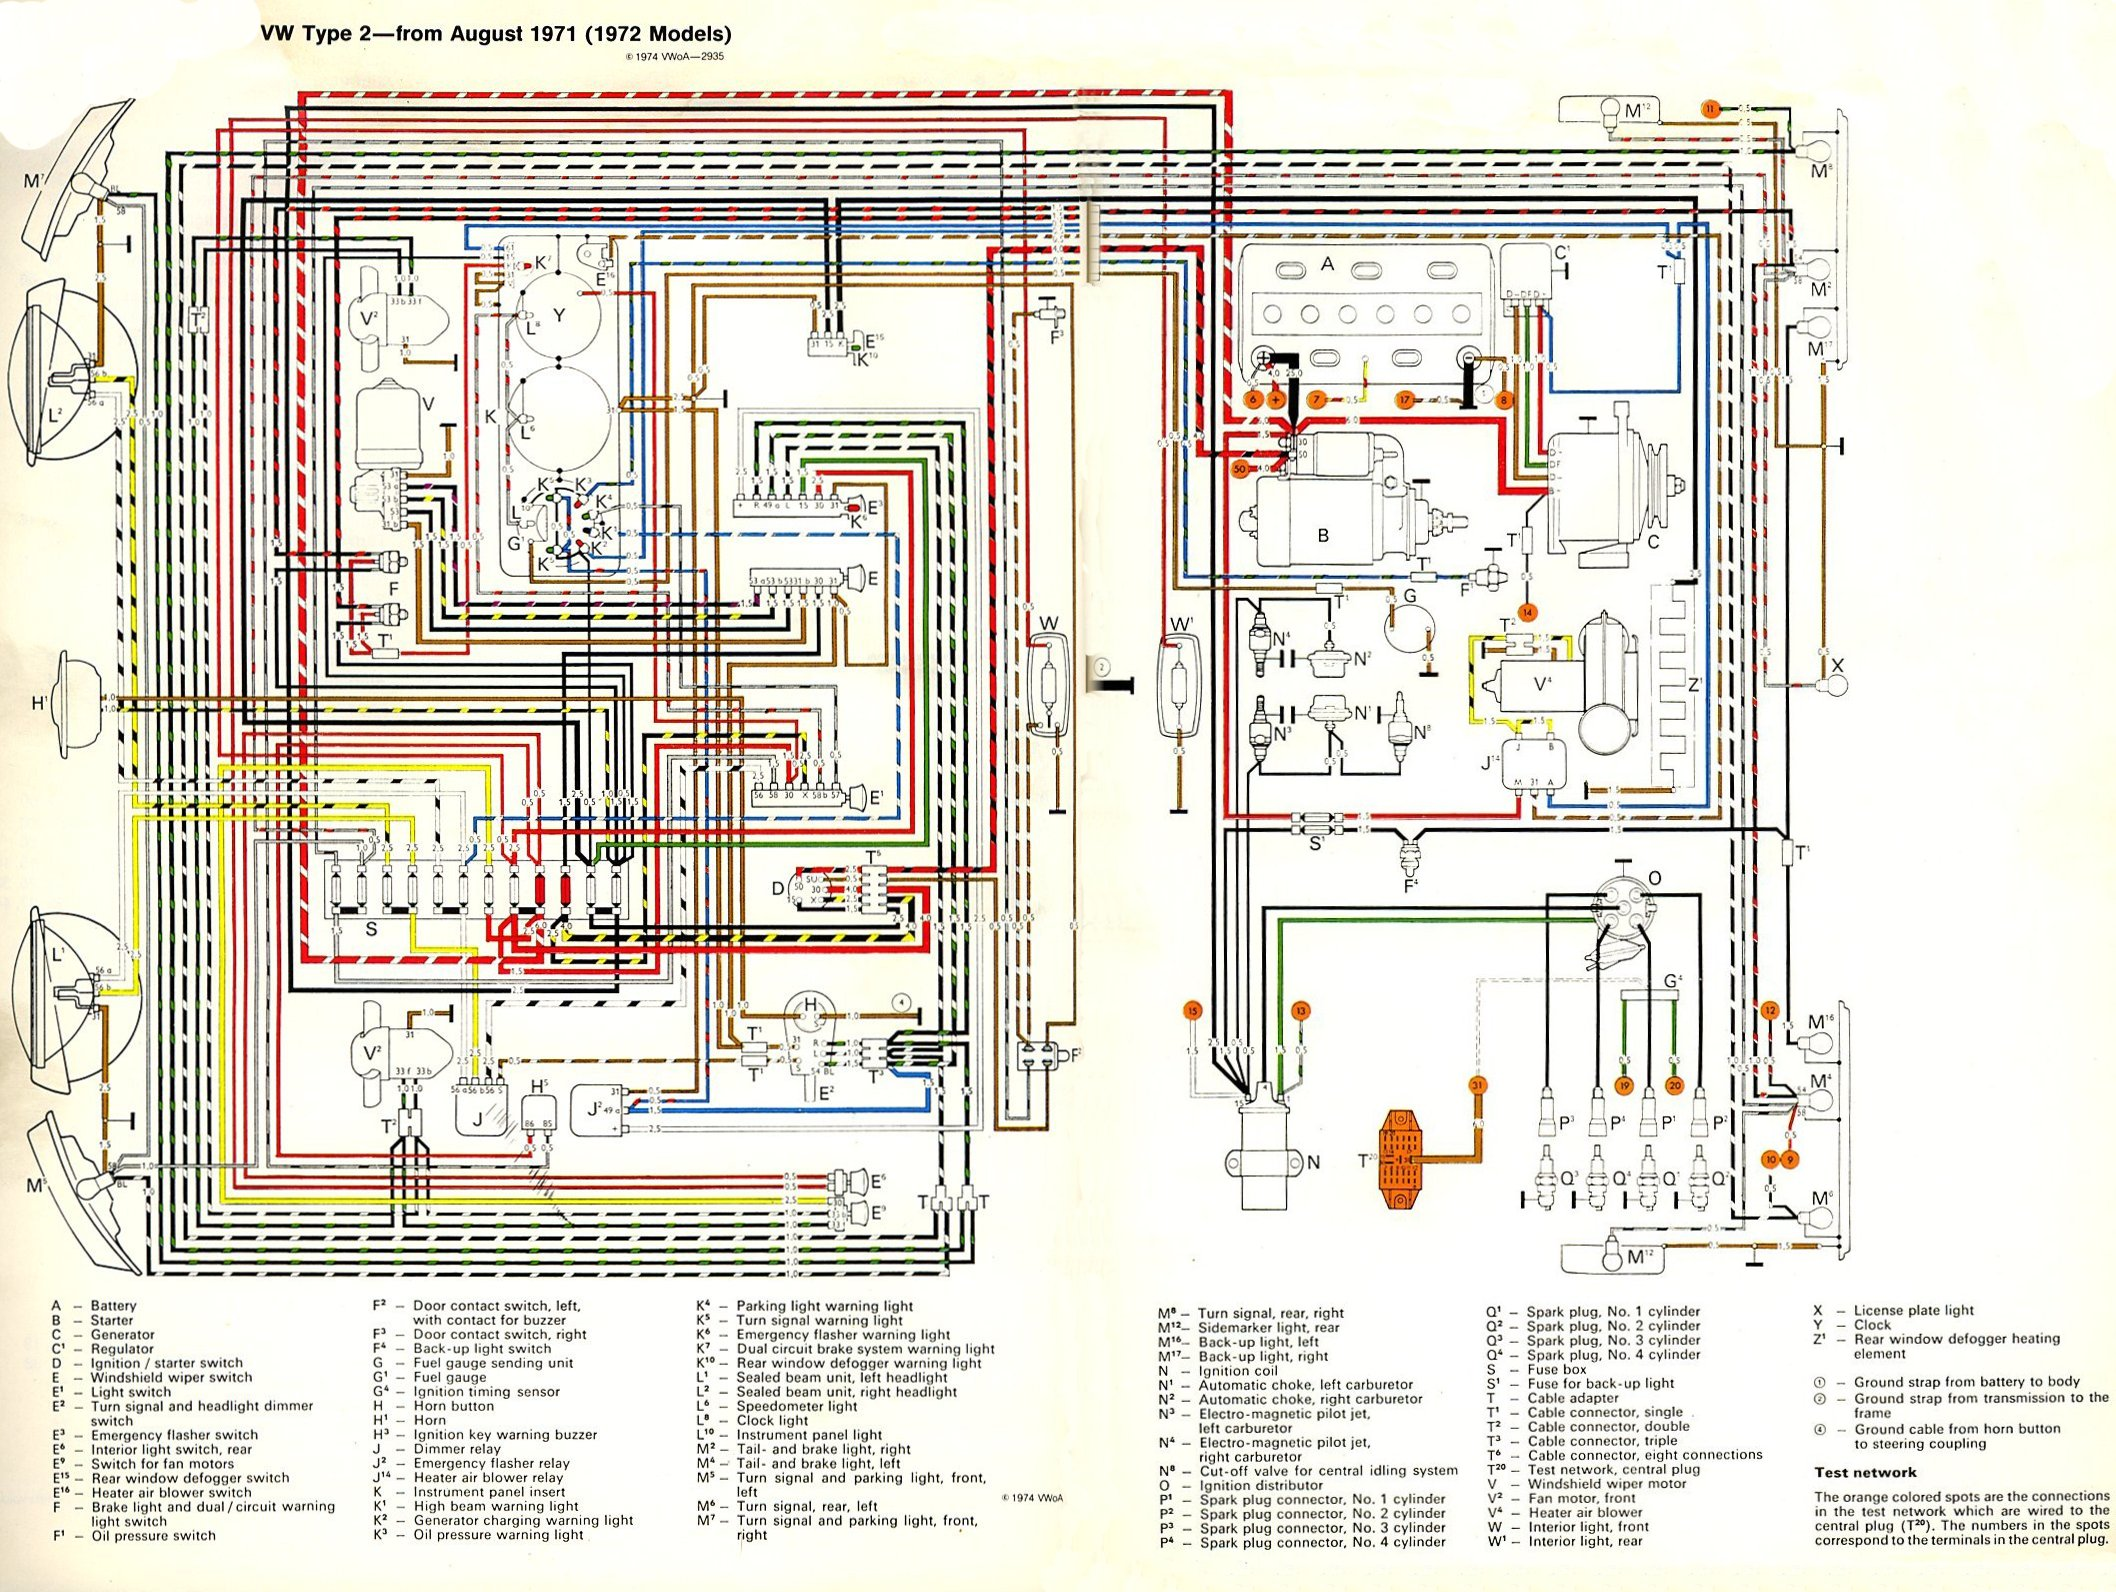 bus_1972_wiring bus_1972_wiring jpg (2116�1592) wire pinterest kombi camper vw t4 fuse box wiring diagram at crackthecode.co